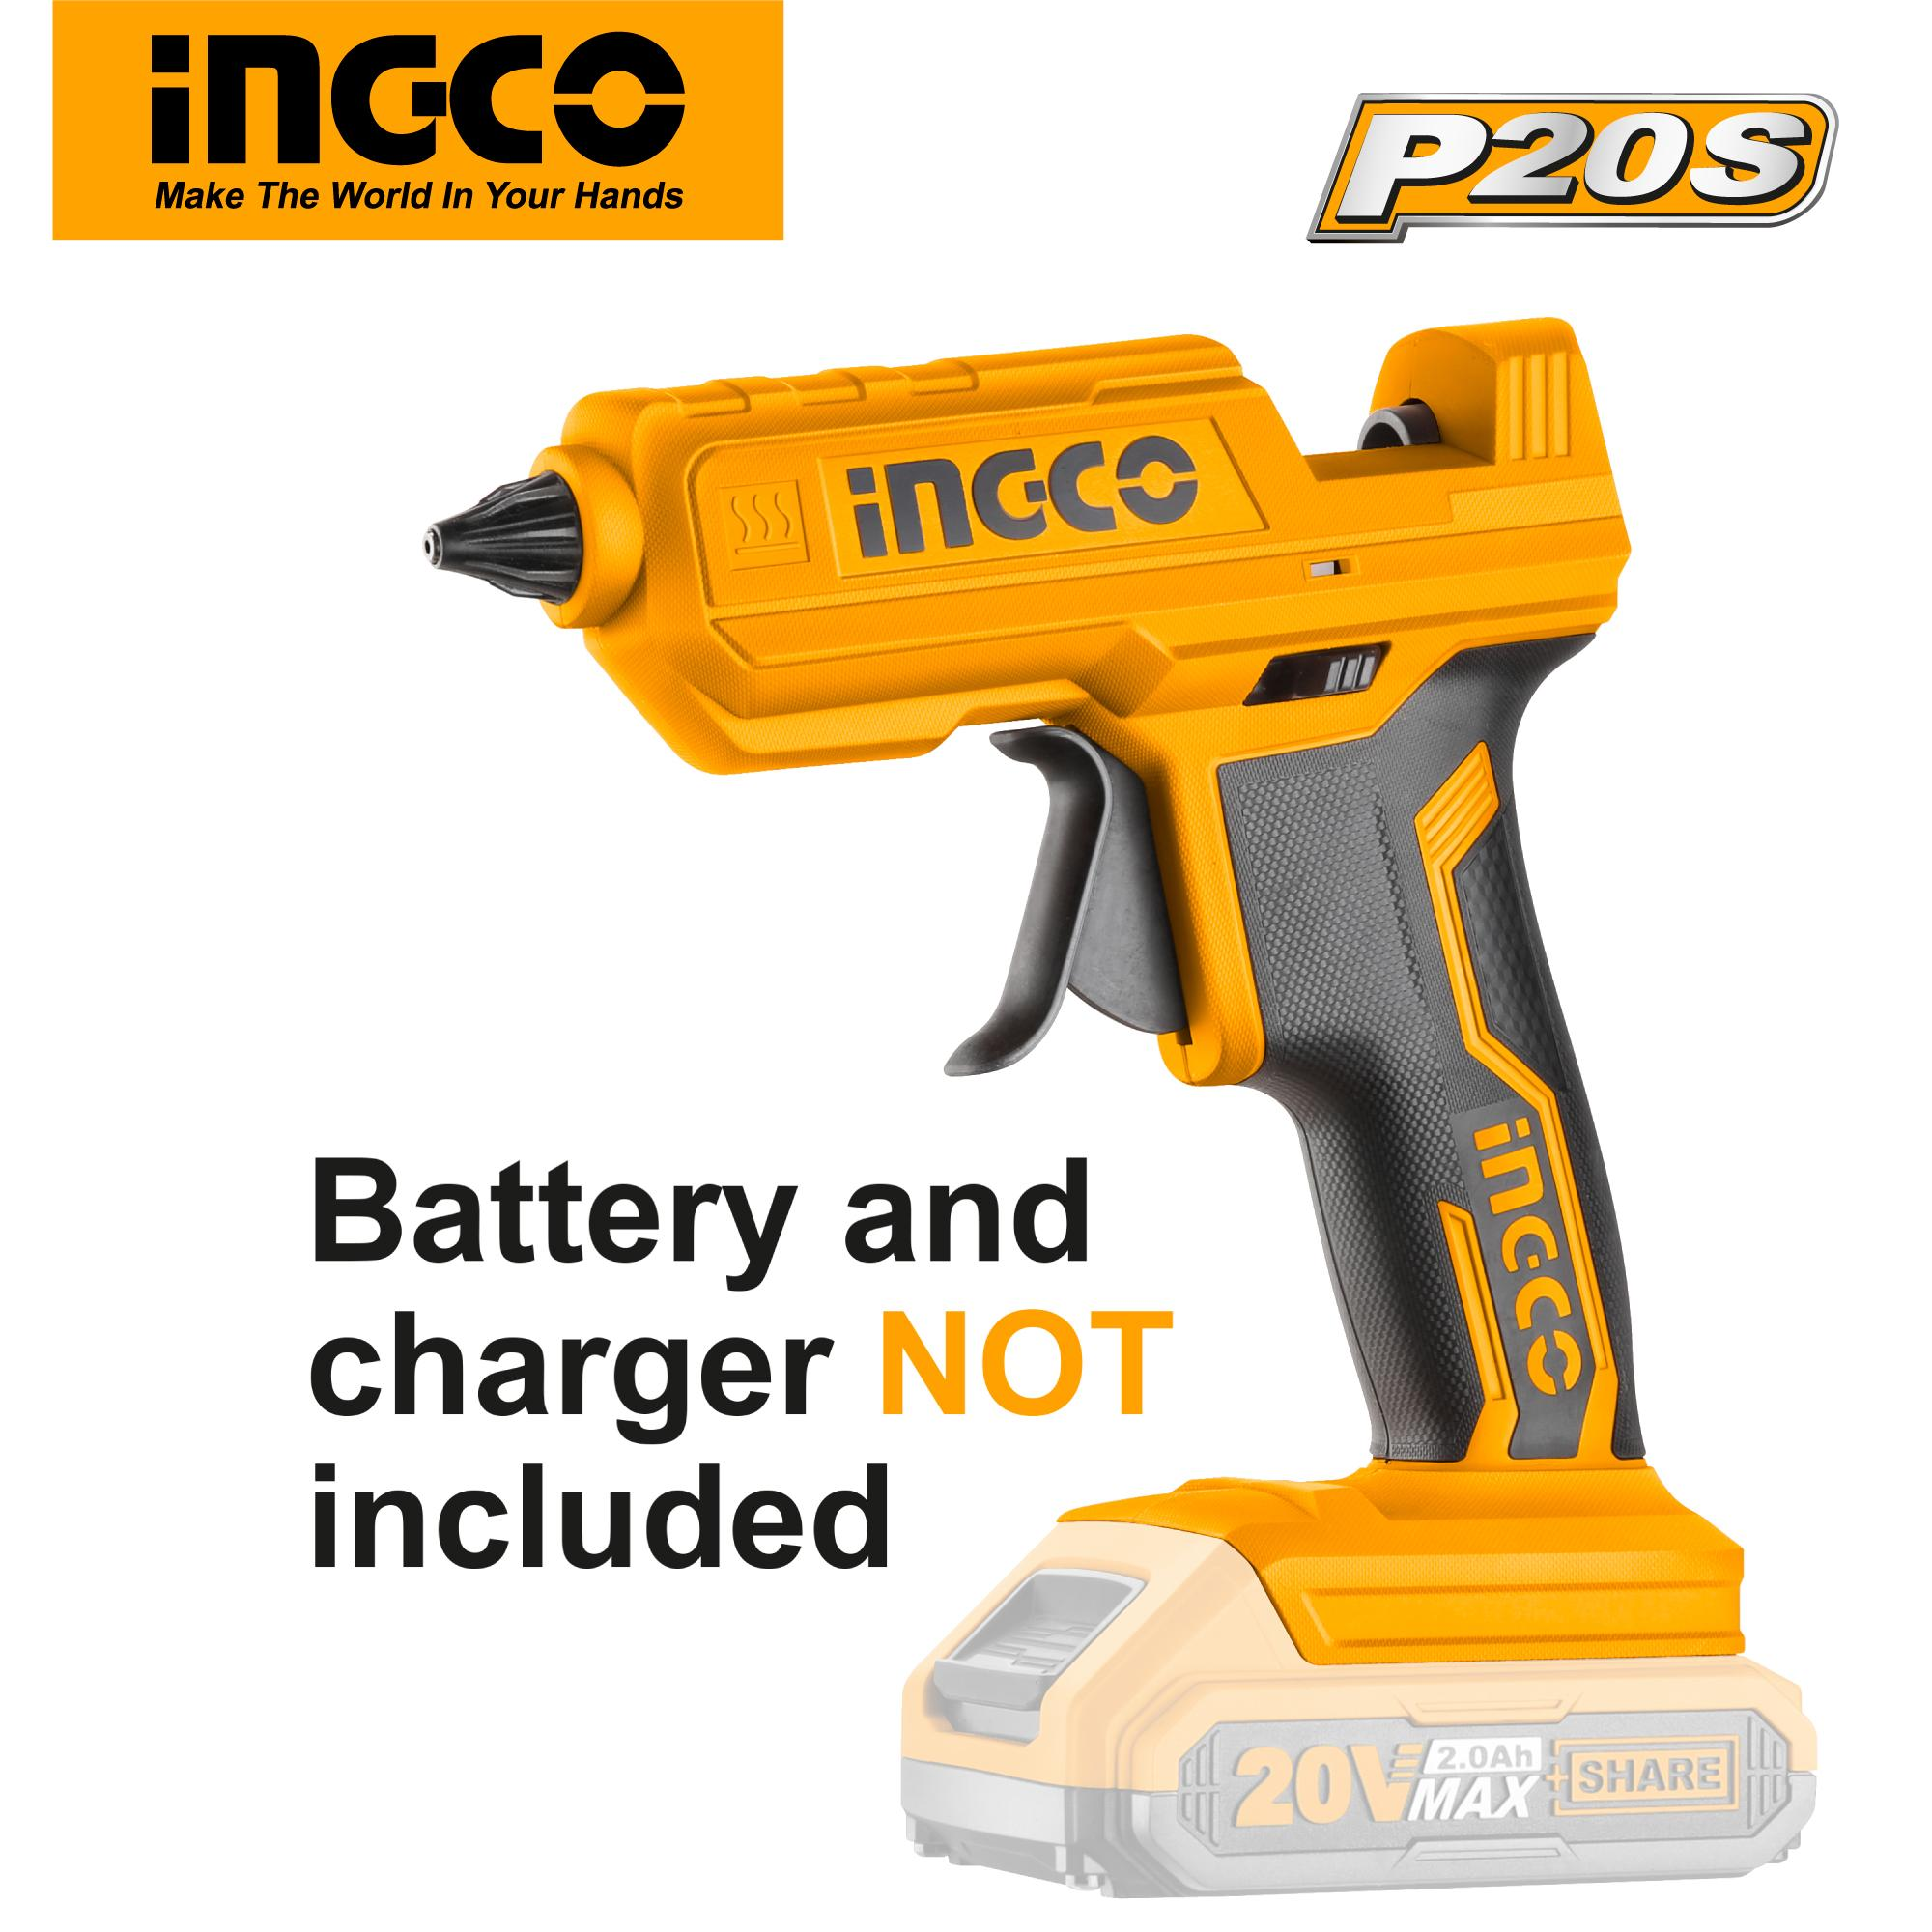 INGCO P20S Tools 20V Lithium-Ion Hot Glue Gun with 2 Glue Sticks CGGLI2001 (Body Only)